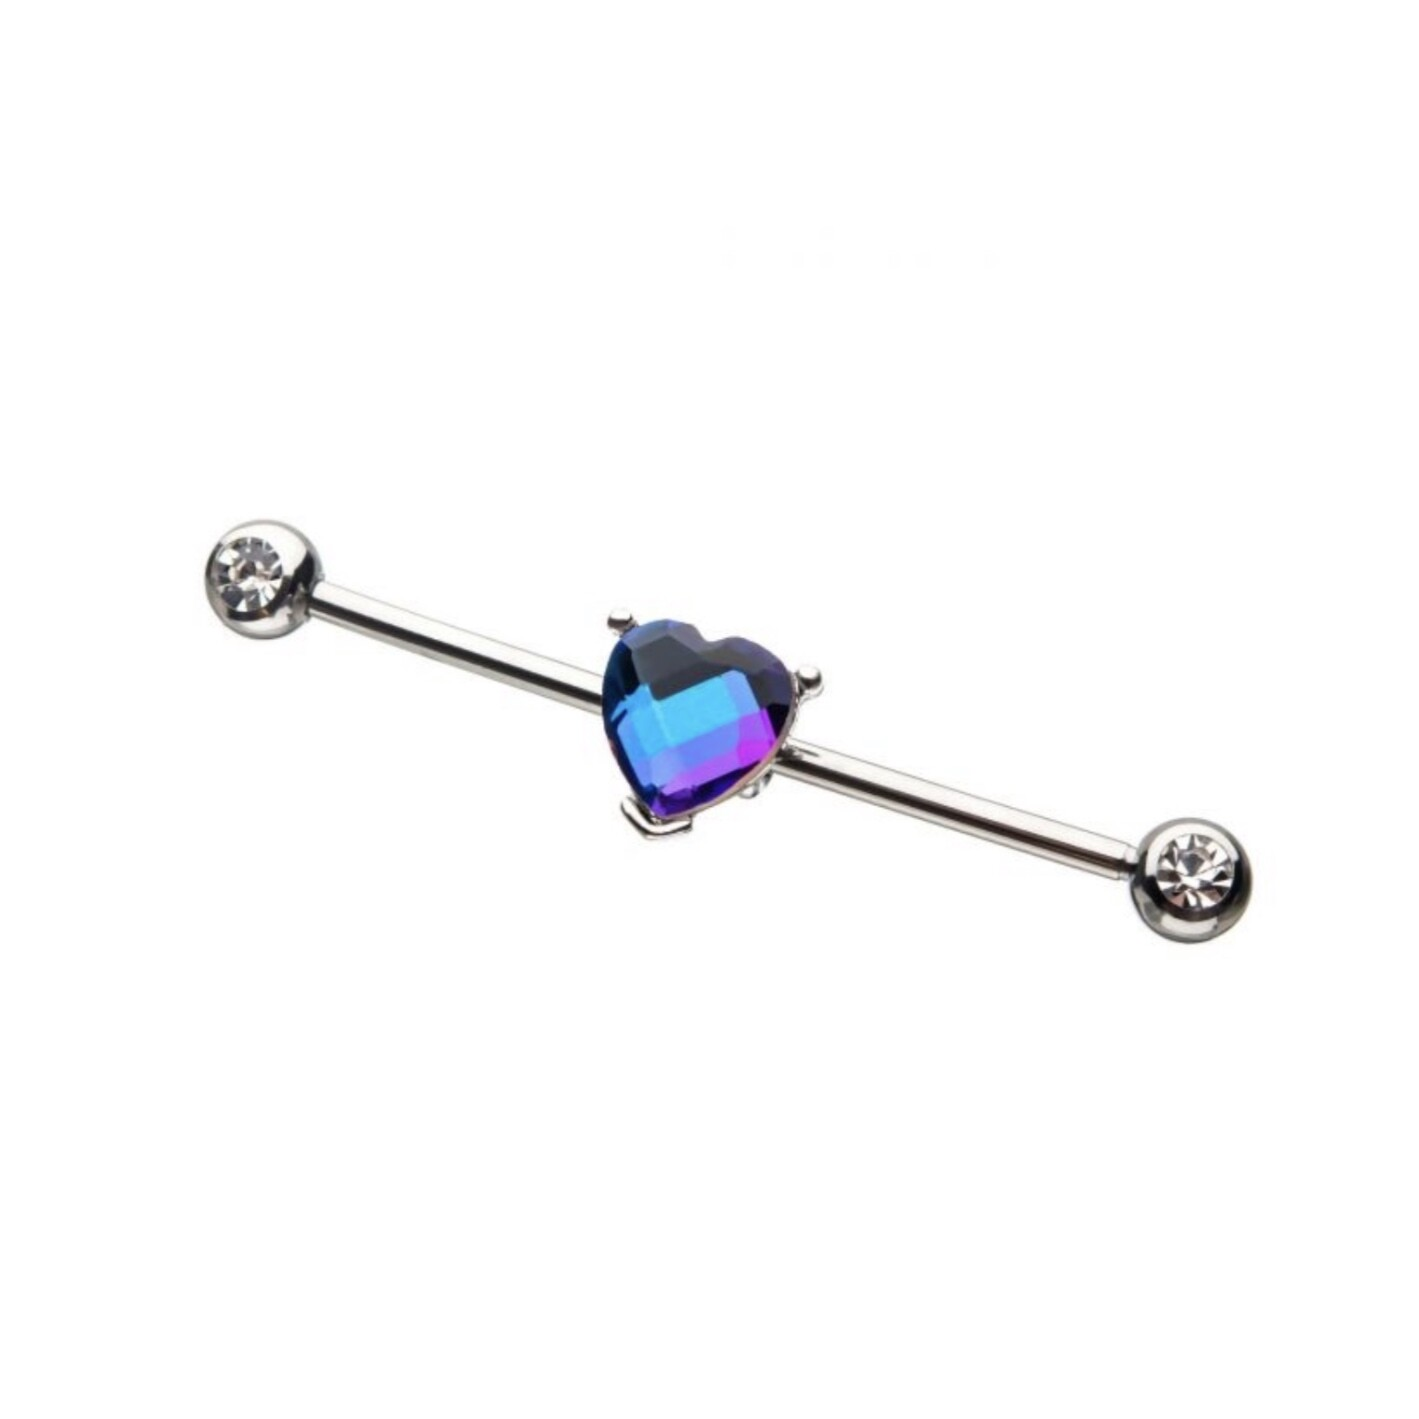 "14G BLUE CRYSTAL HEART 1&3/8"" BAR"